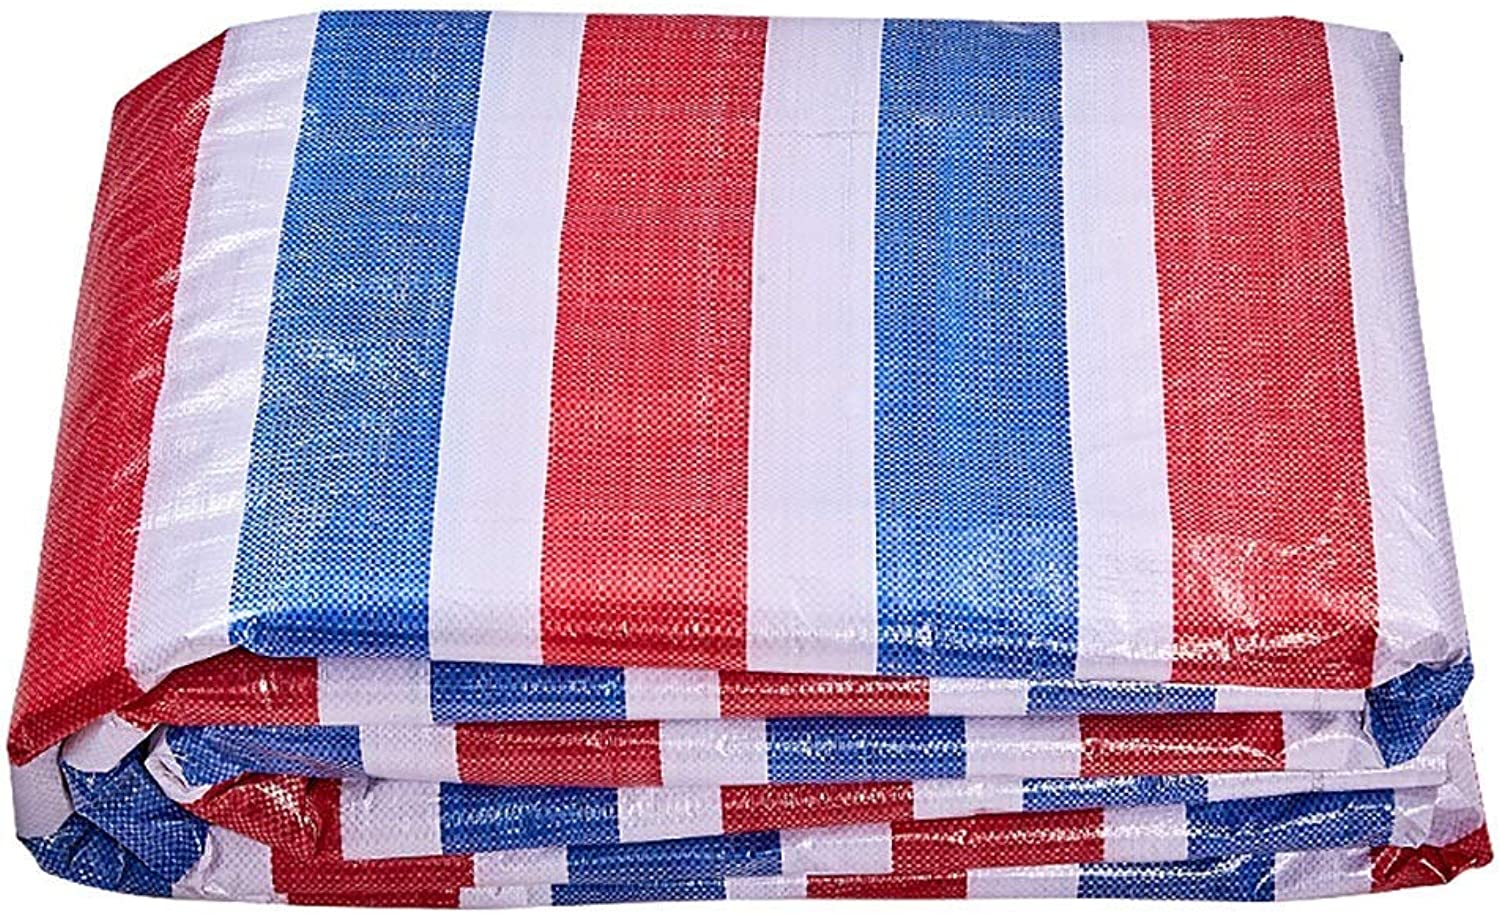 Kineede color Strip Tarp Rainproof Outdoor Sunscreen Thicken Oilcloth TruckSpecific Insulated Plastic Sheeting